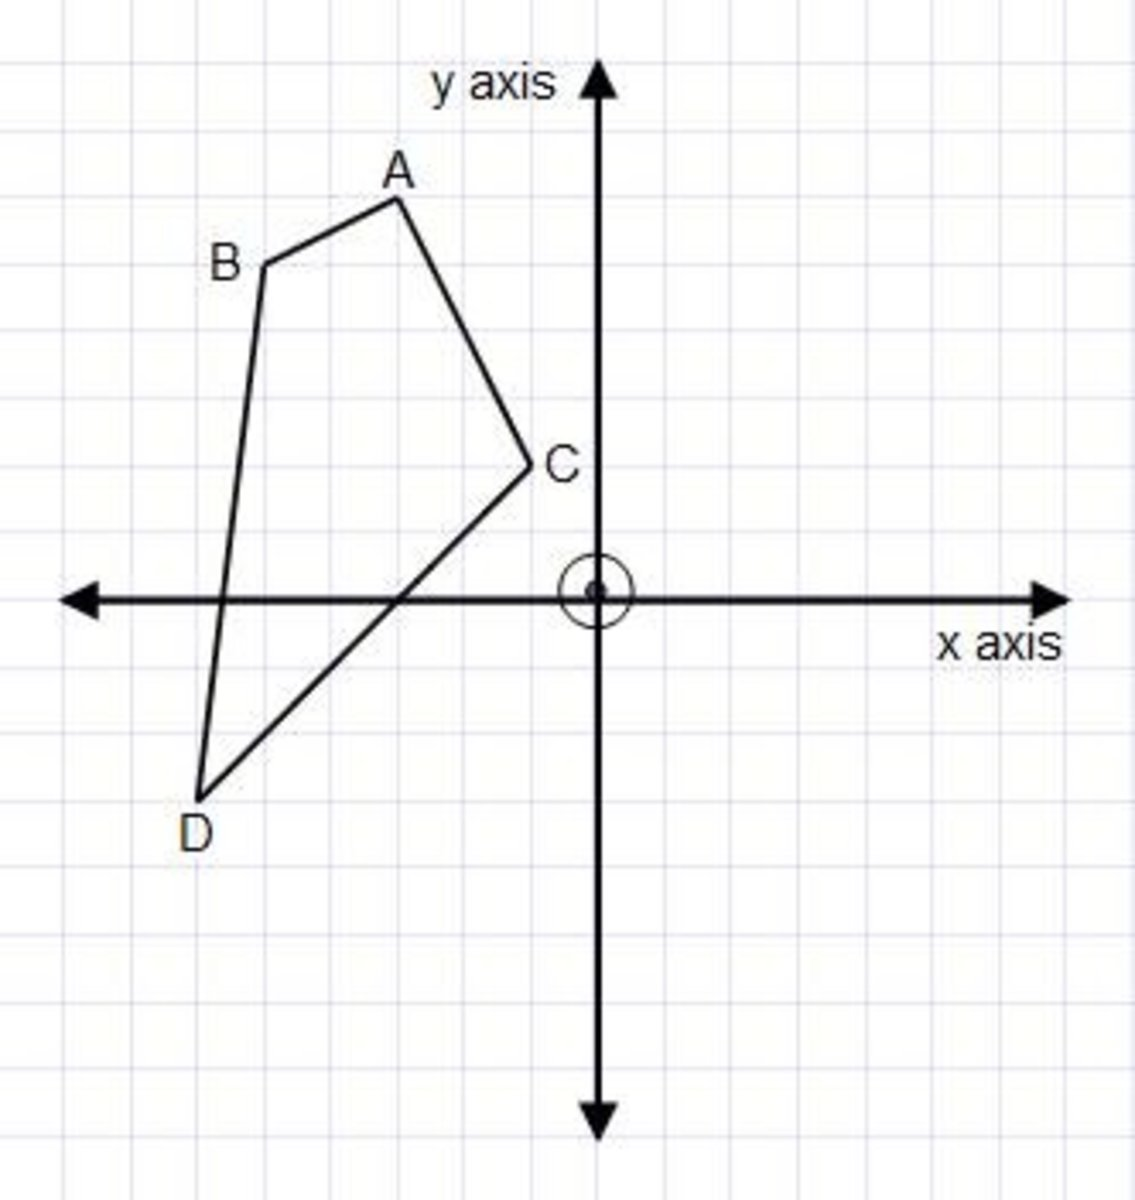 examples-on-how-to-reflect-a-shape-in-the-x-axis-or-y-axis-on-a-coordinate-grid